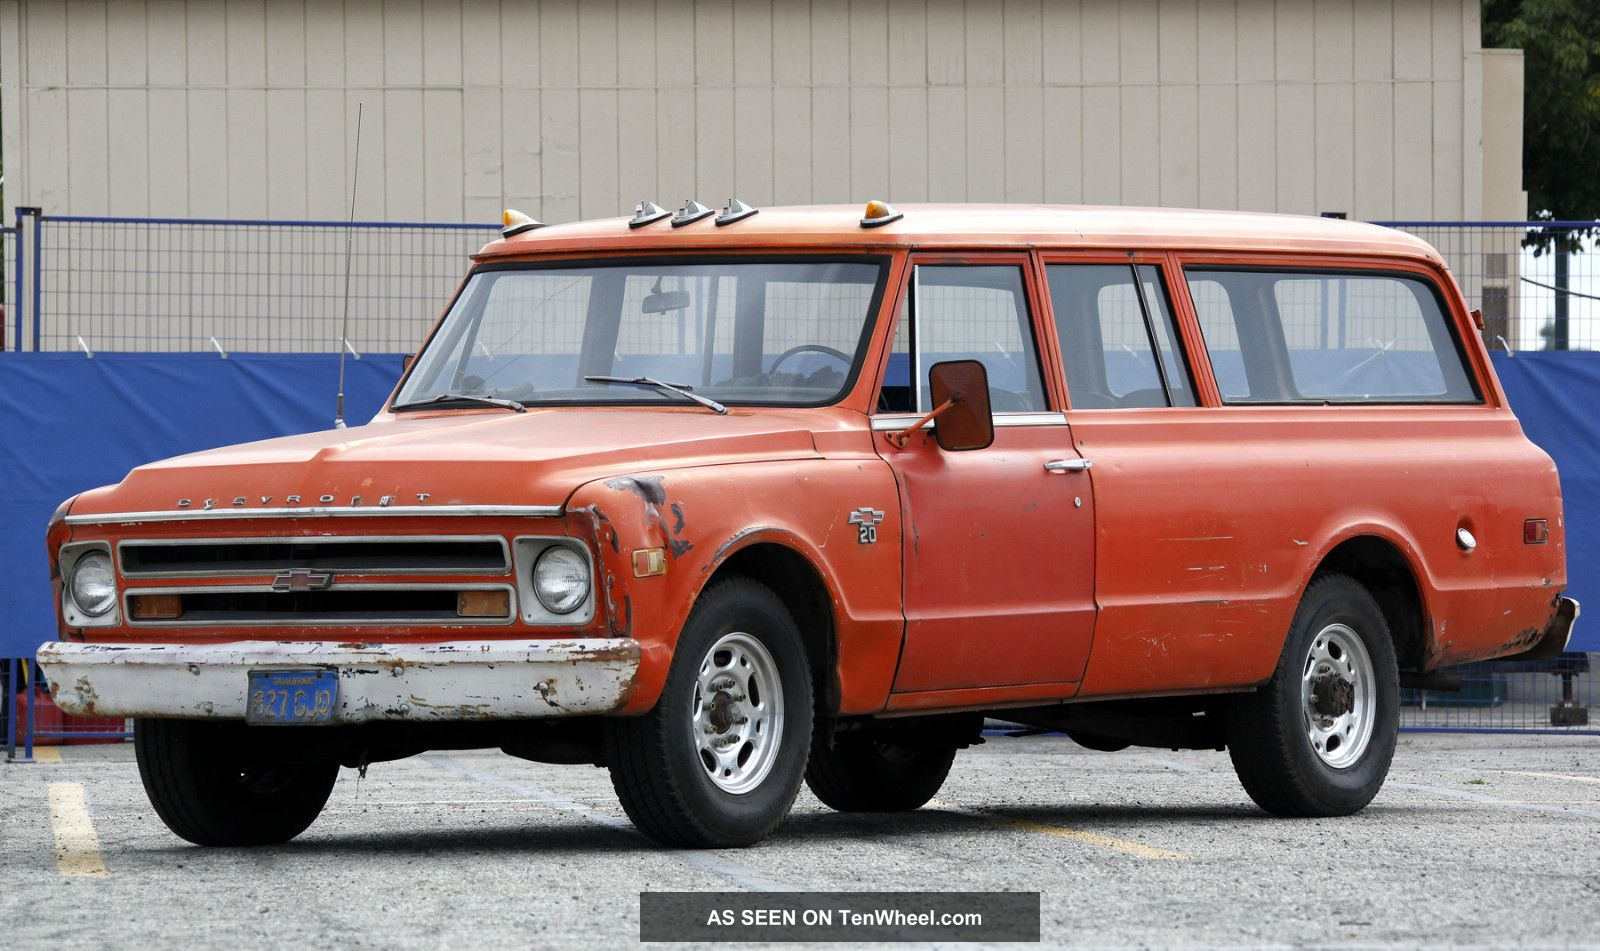 1968 Chevy Carryall Suburban Suburban photo